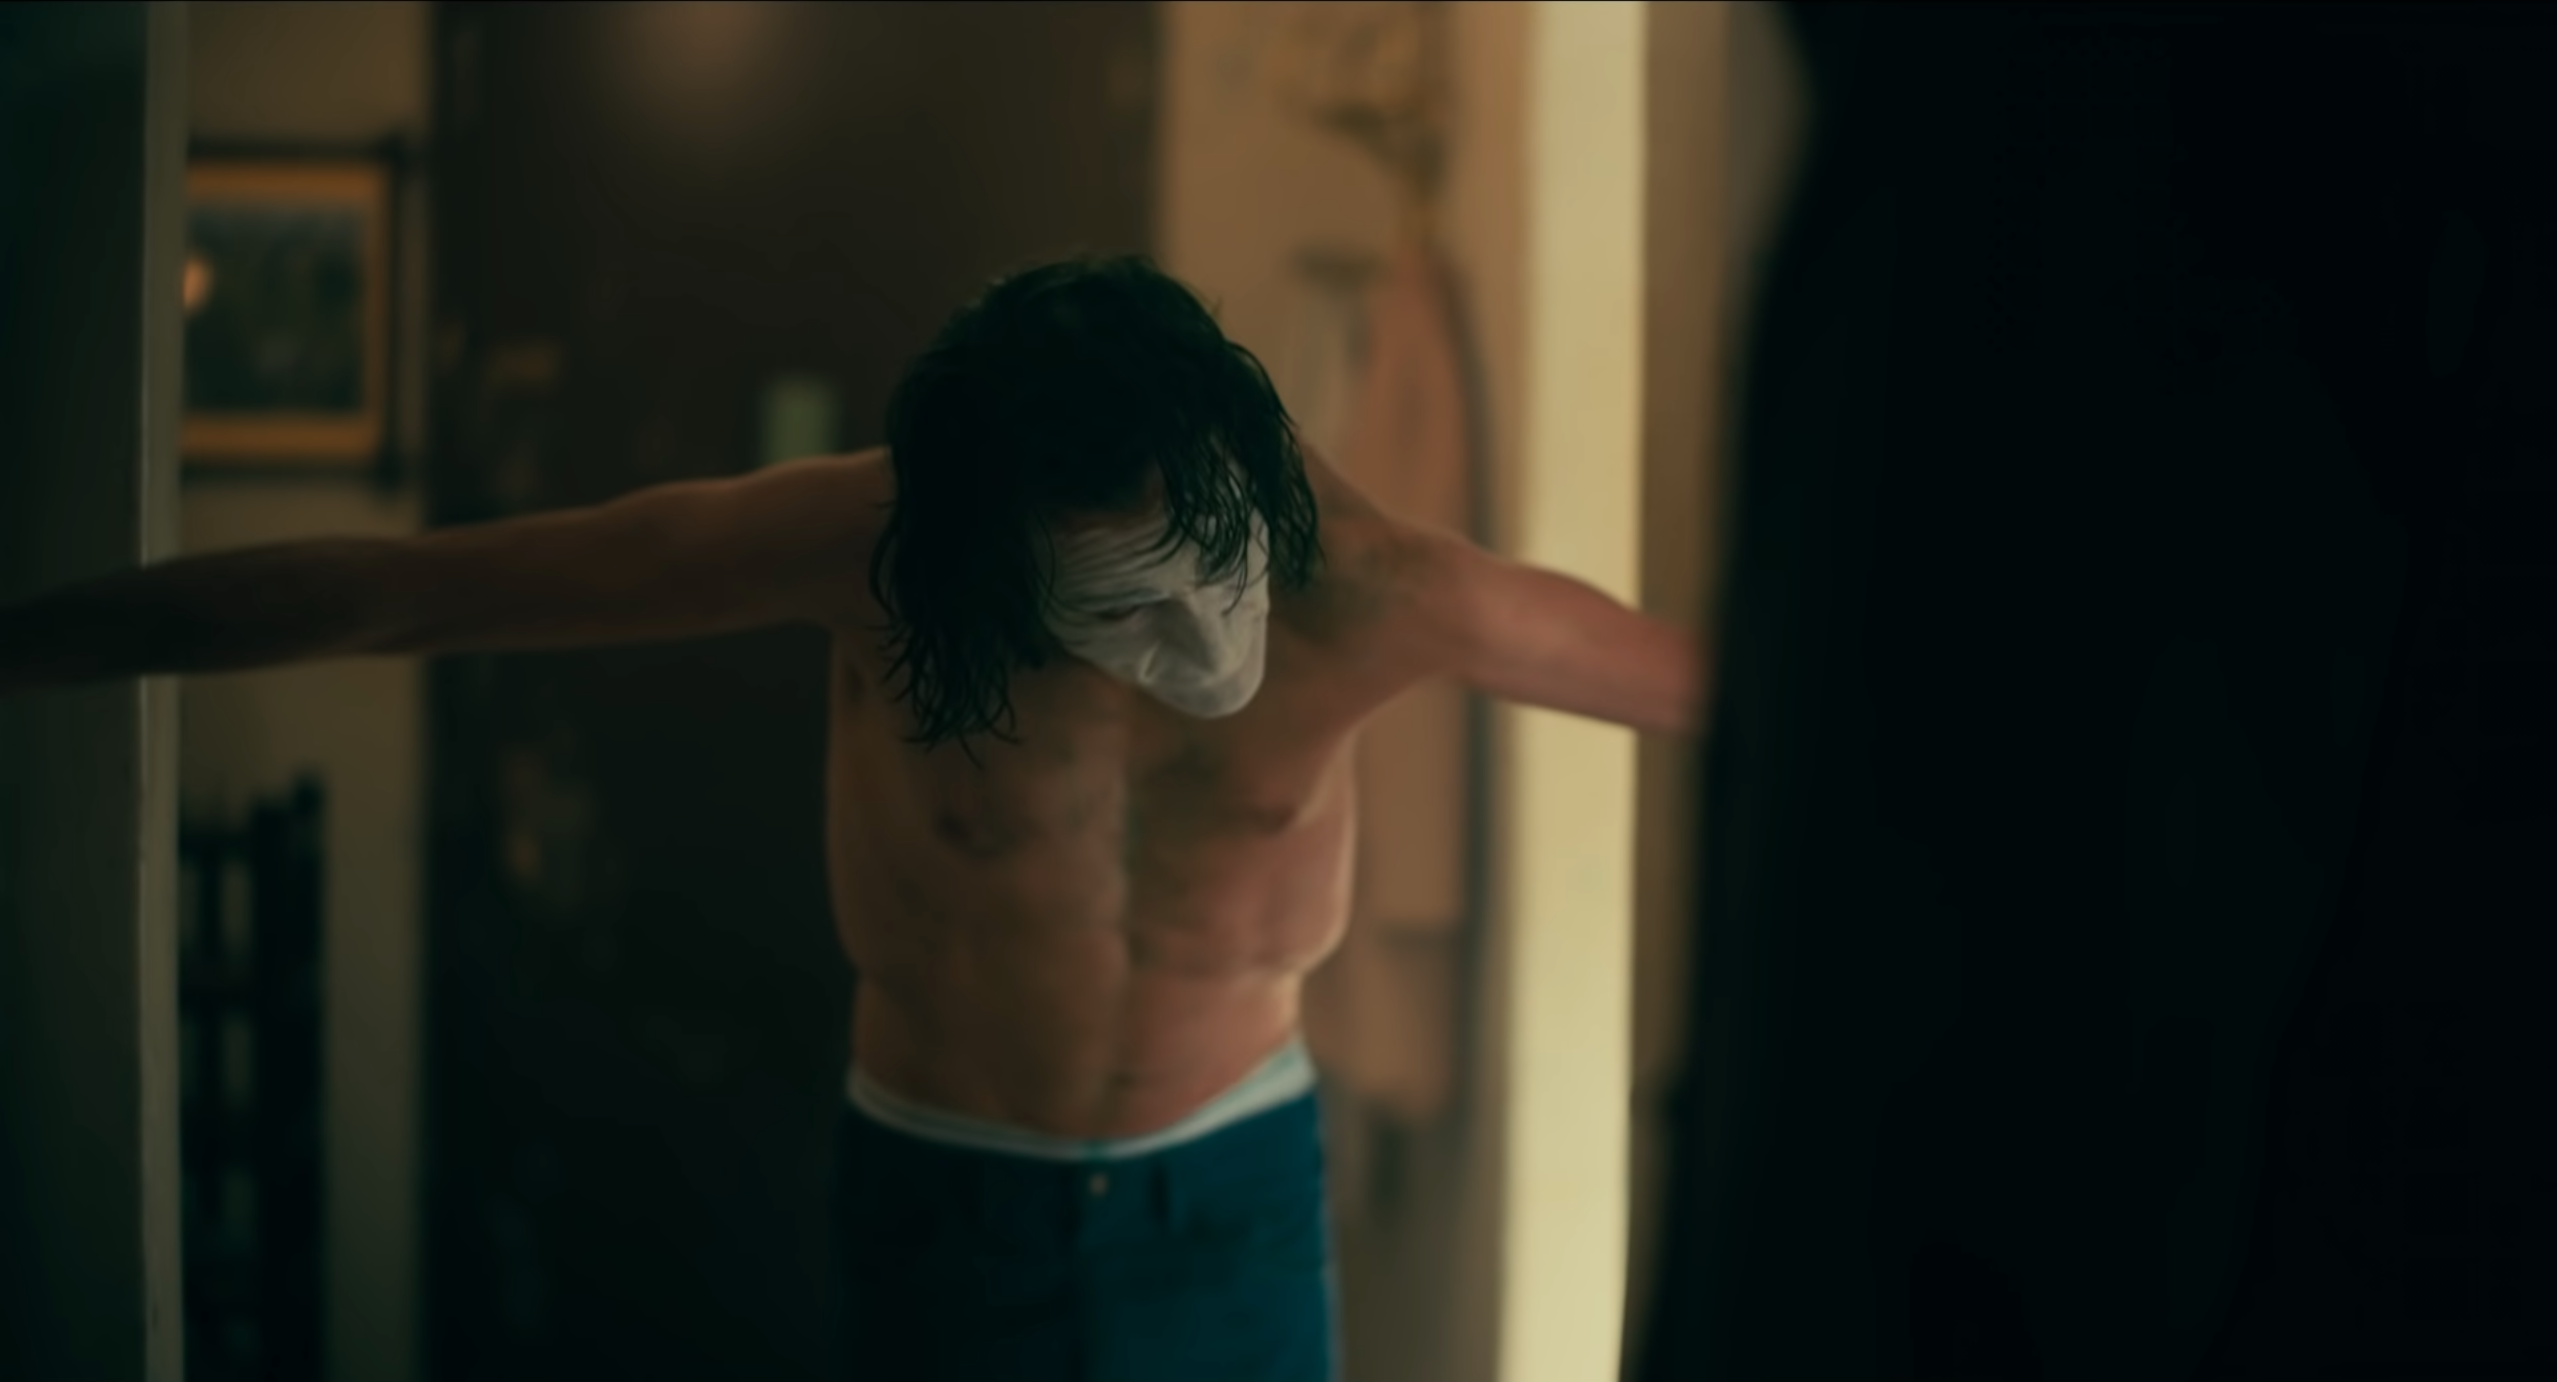 Joker looks up from unnatural pose in final trailer